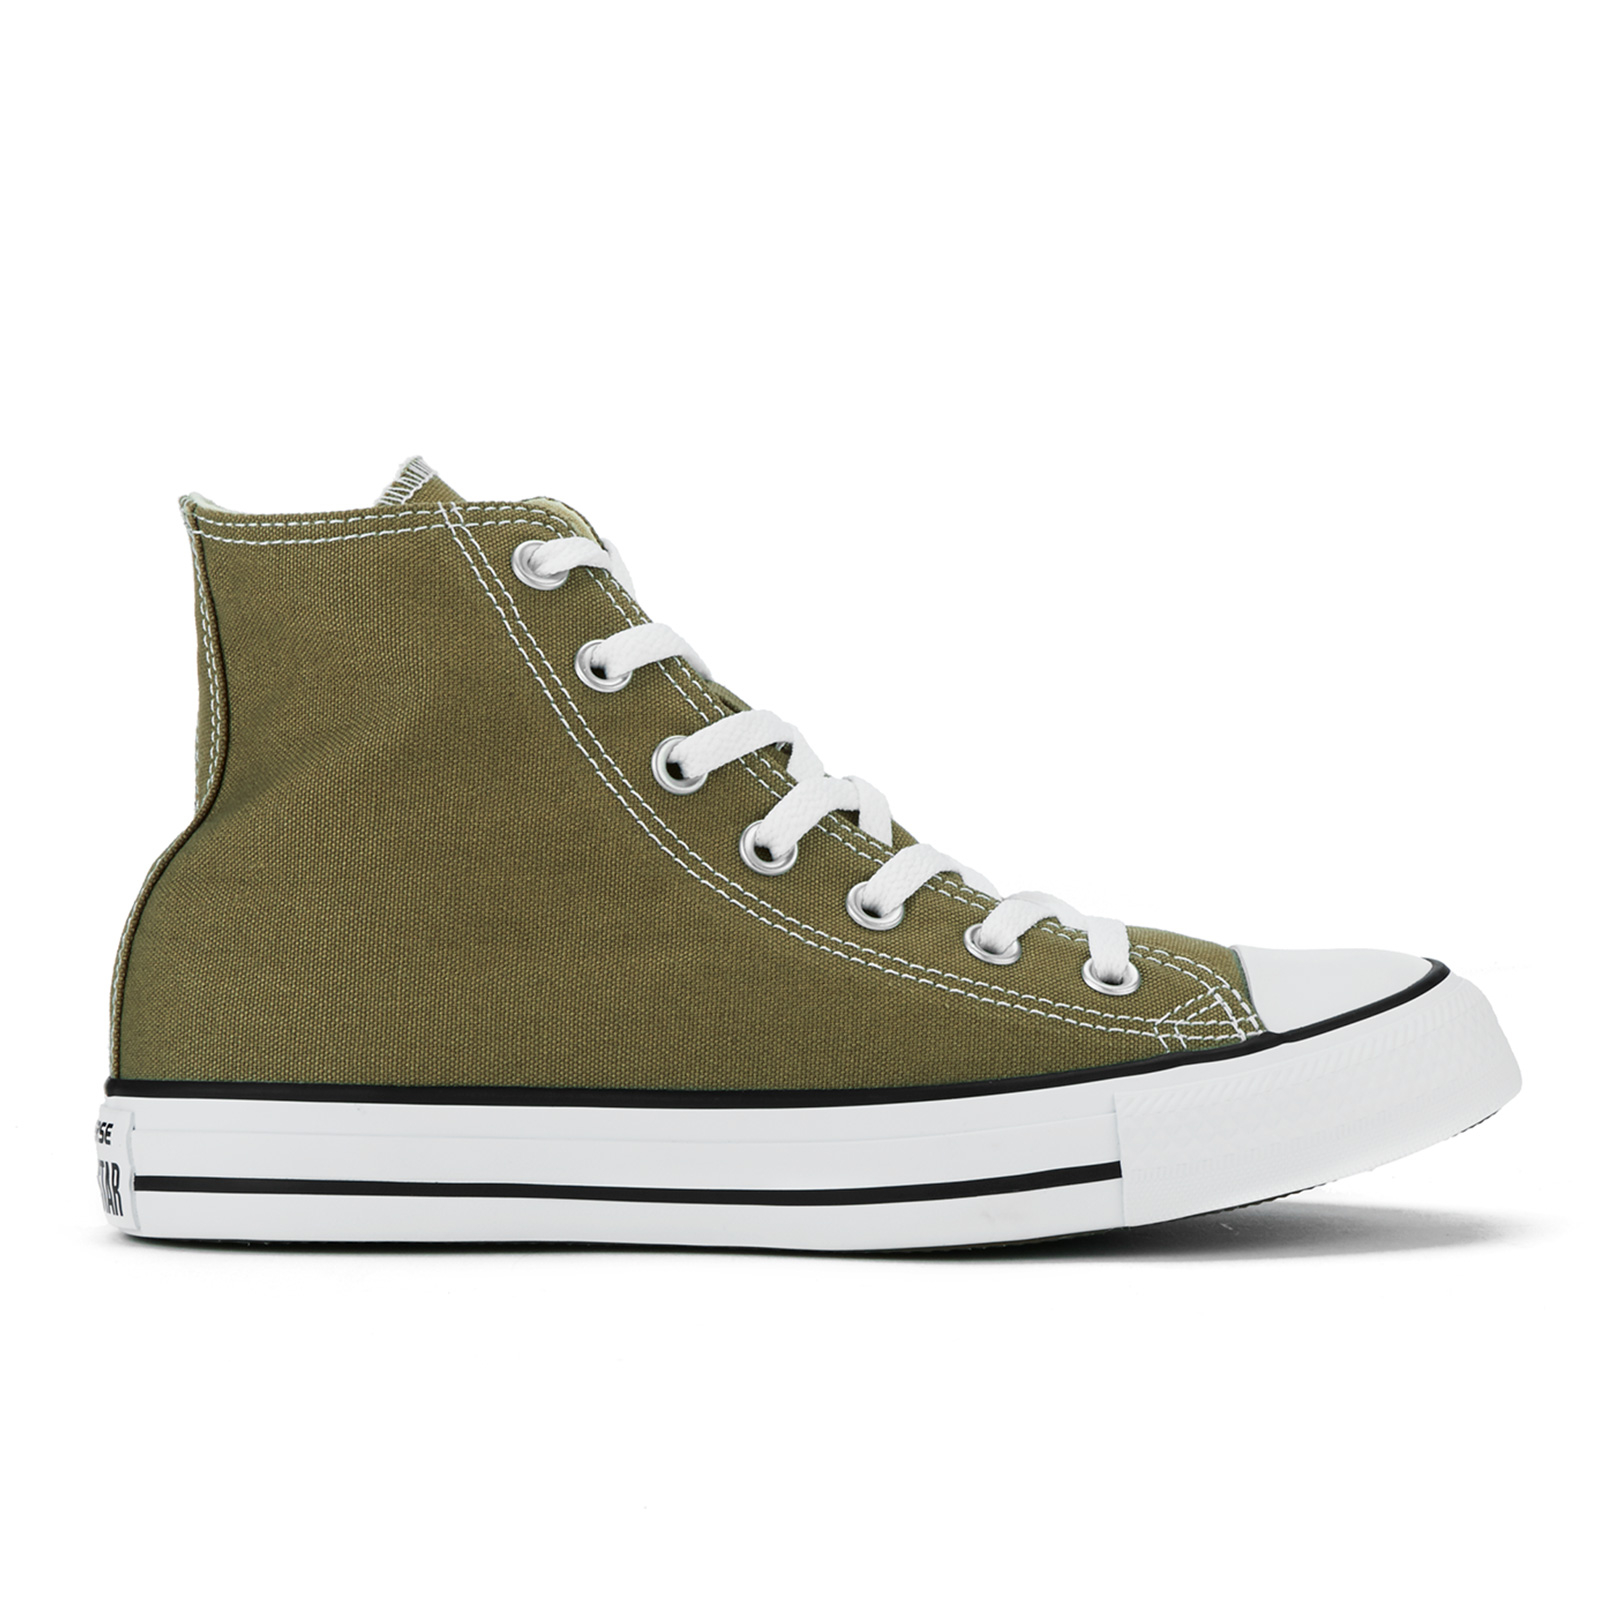 03574ad475f Converse Chuck Taylor All Star Hi-Top Trainers - Jute - Free UK Delivery  over £50